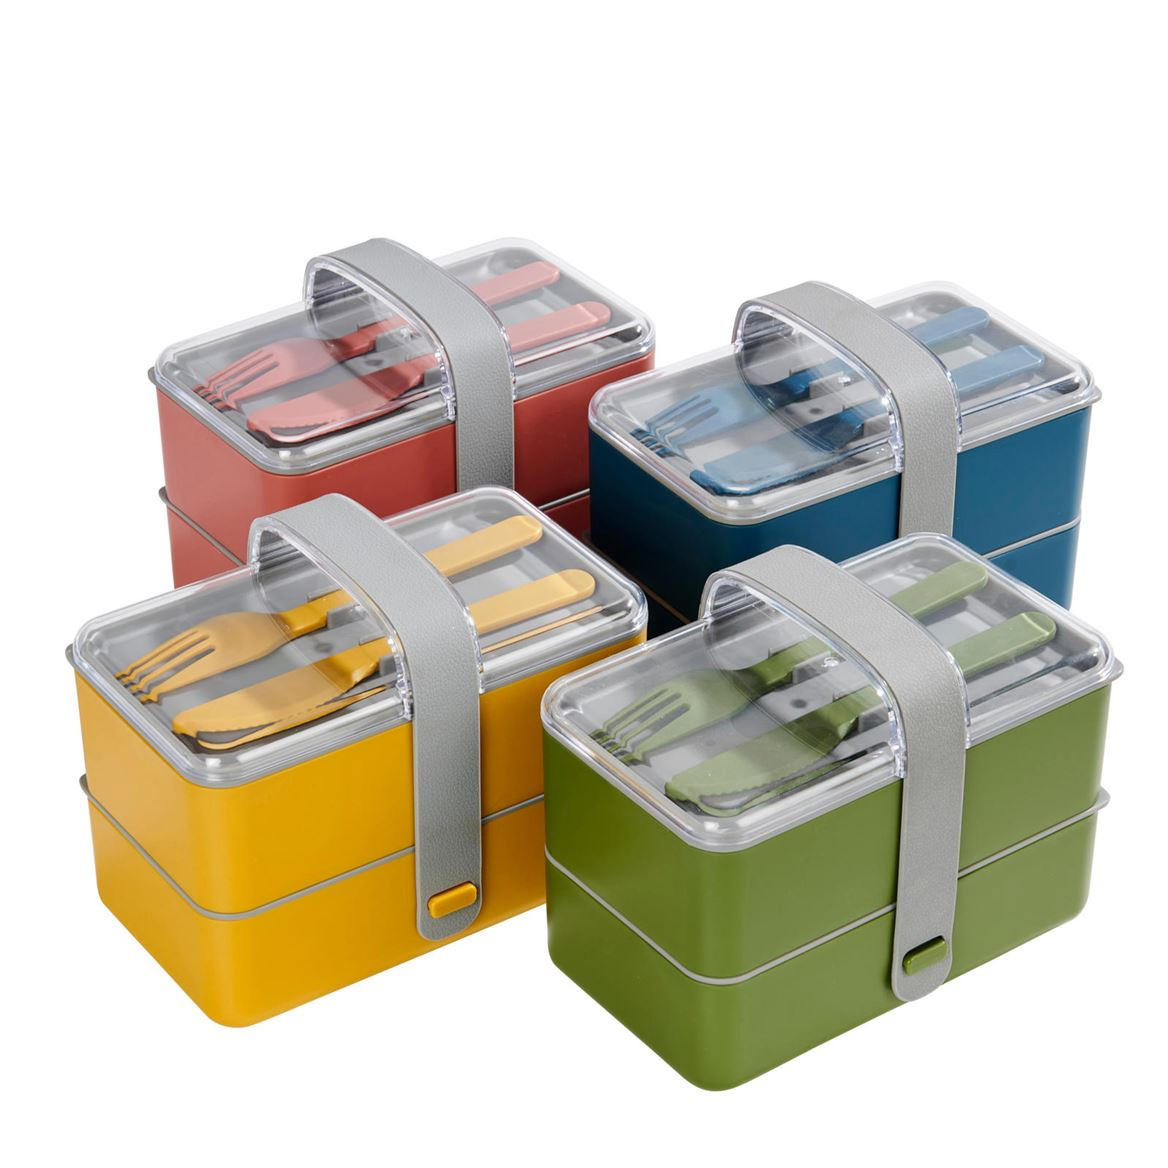 LUNCHTIME Lancheira com talheres 3 cores amarelo, verde, azul H 13.5 x W 17 x D 10 cm_lunchtime-lancheira-com-talheres-3-cores-amarelo,-verde,-azul-h-13-5-x-w-17-x-d-10-cm